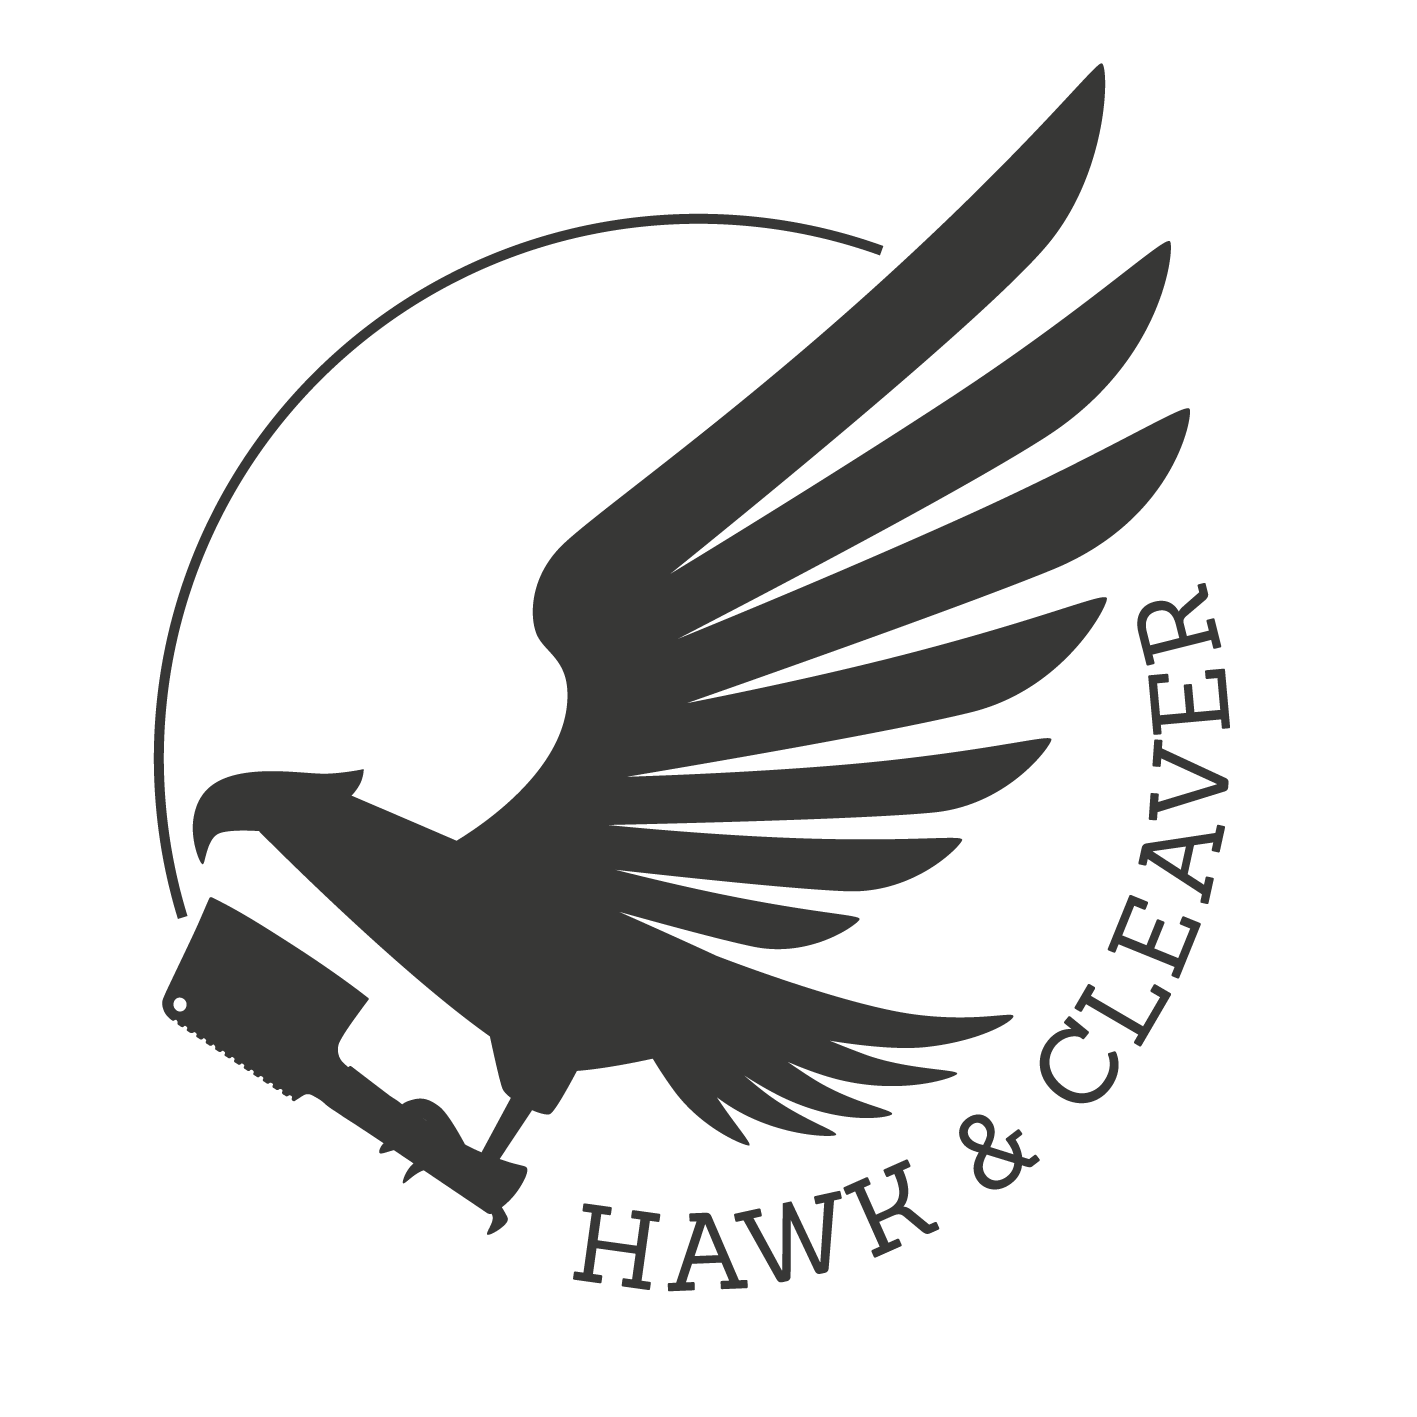 Hawk & Cleaver